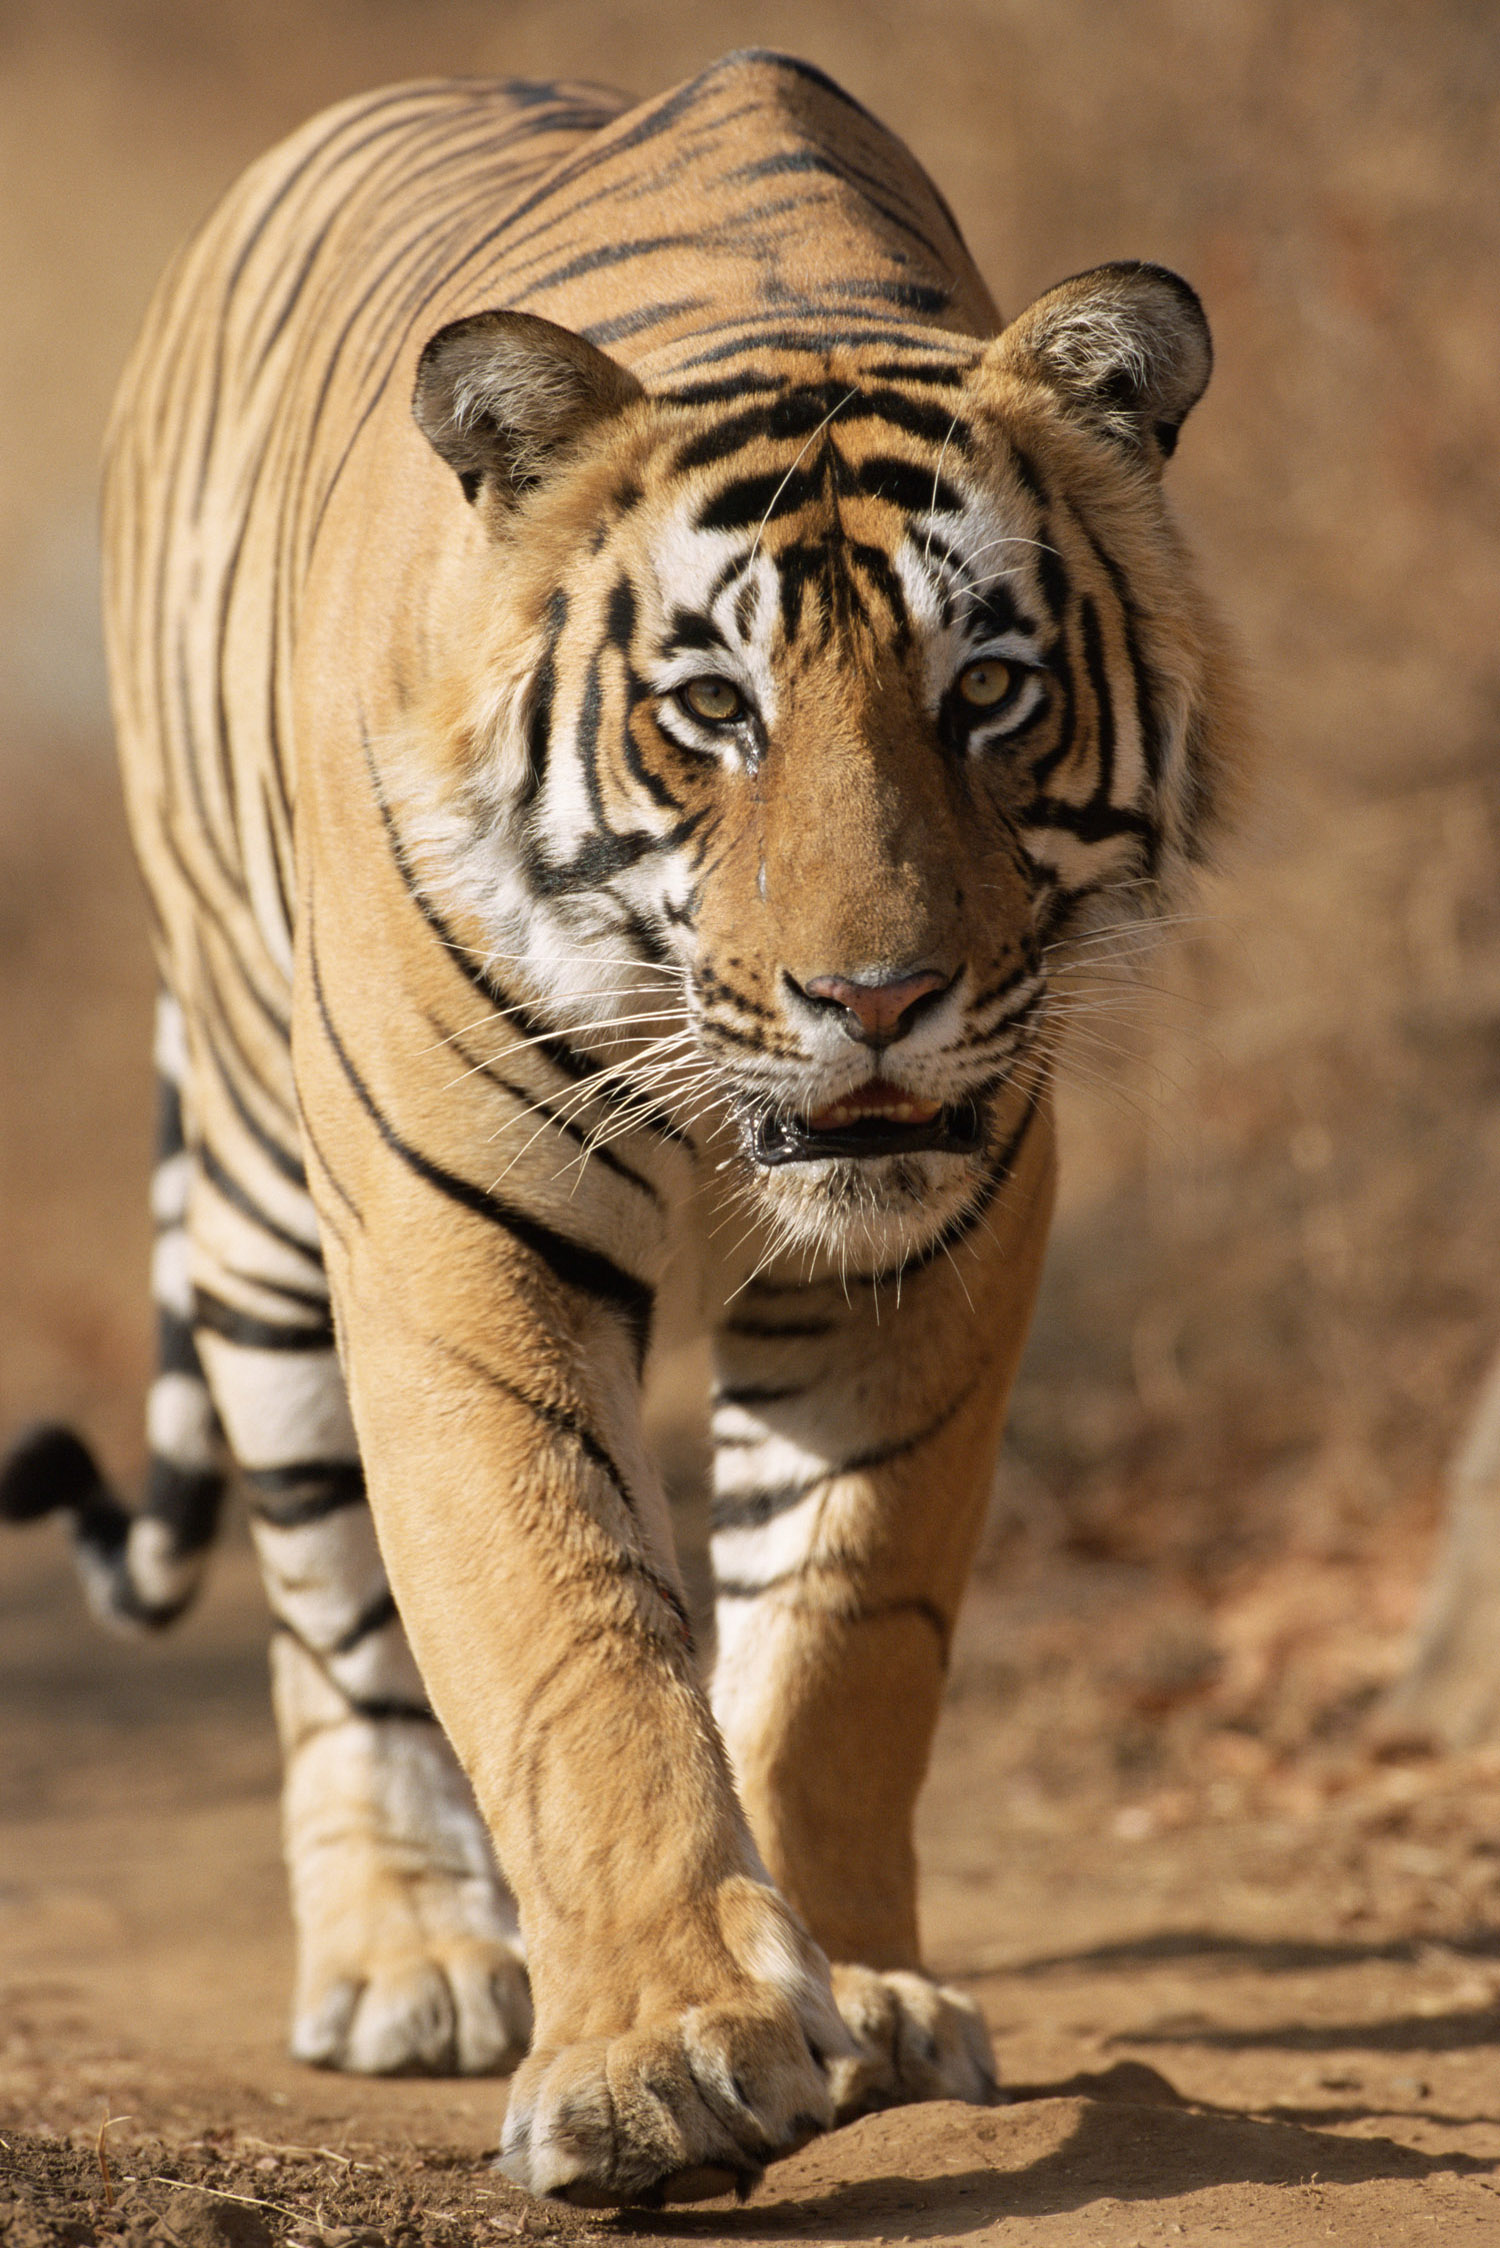 Bengal tiger approaching, Ranthambhore National Park, Rajasthan, India